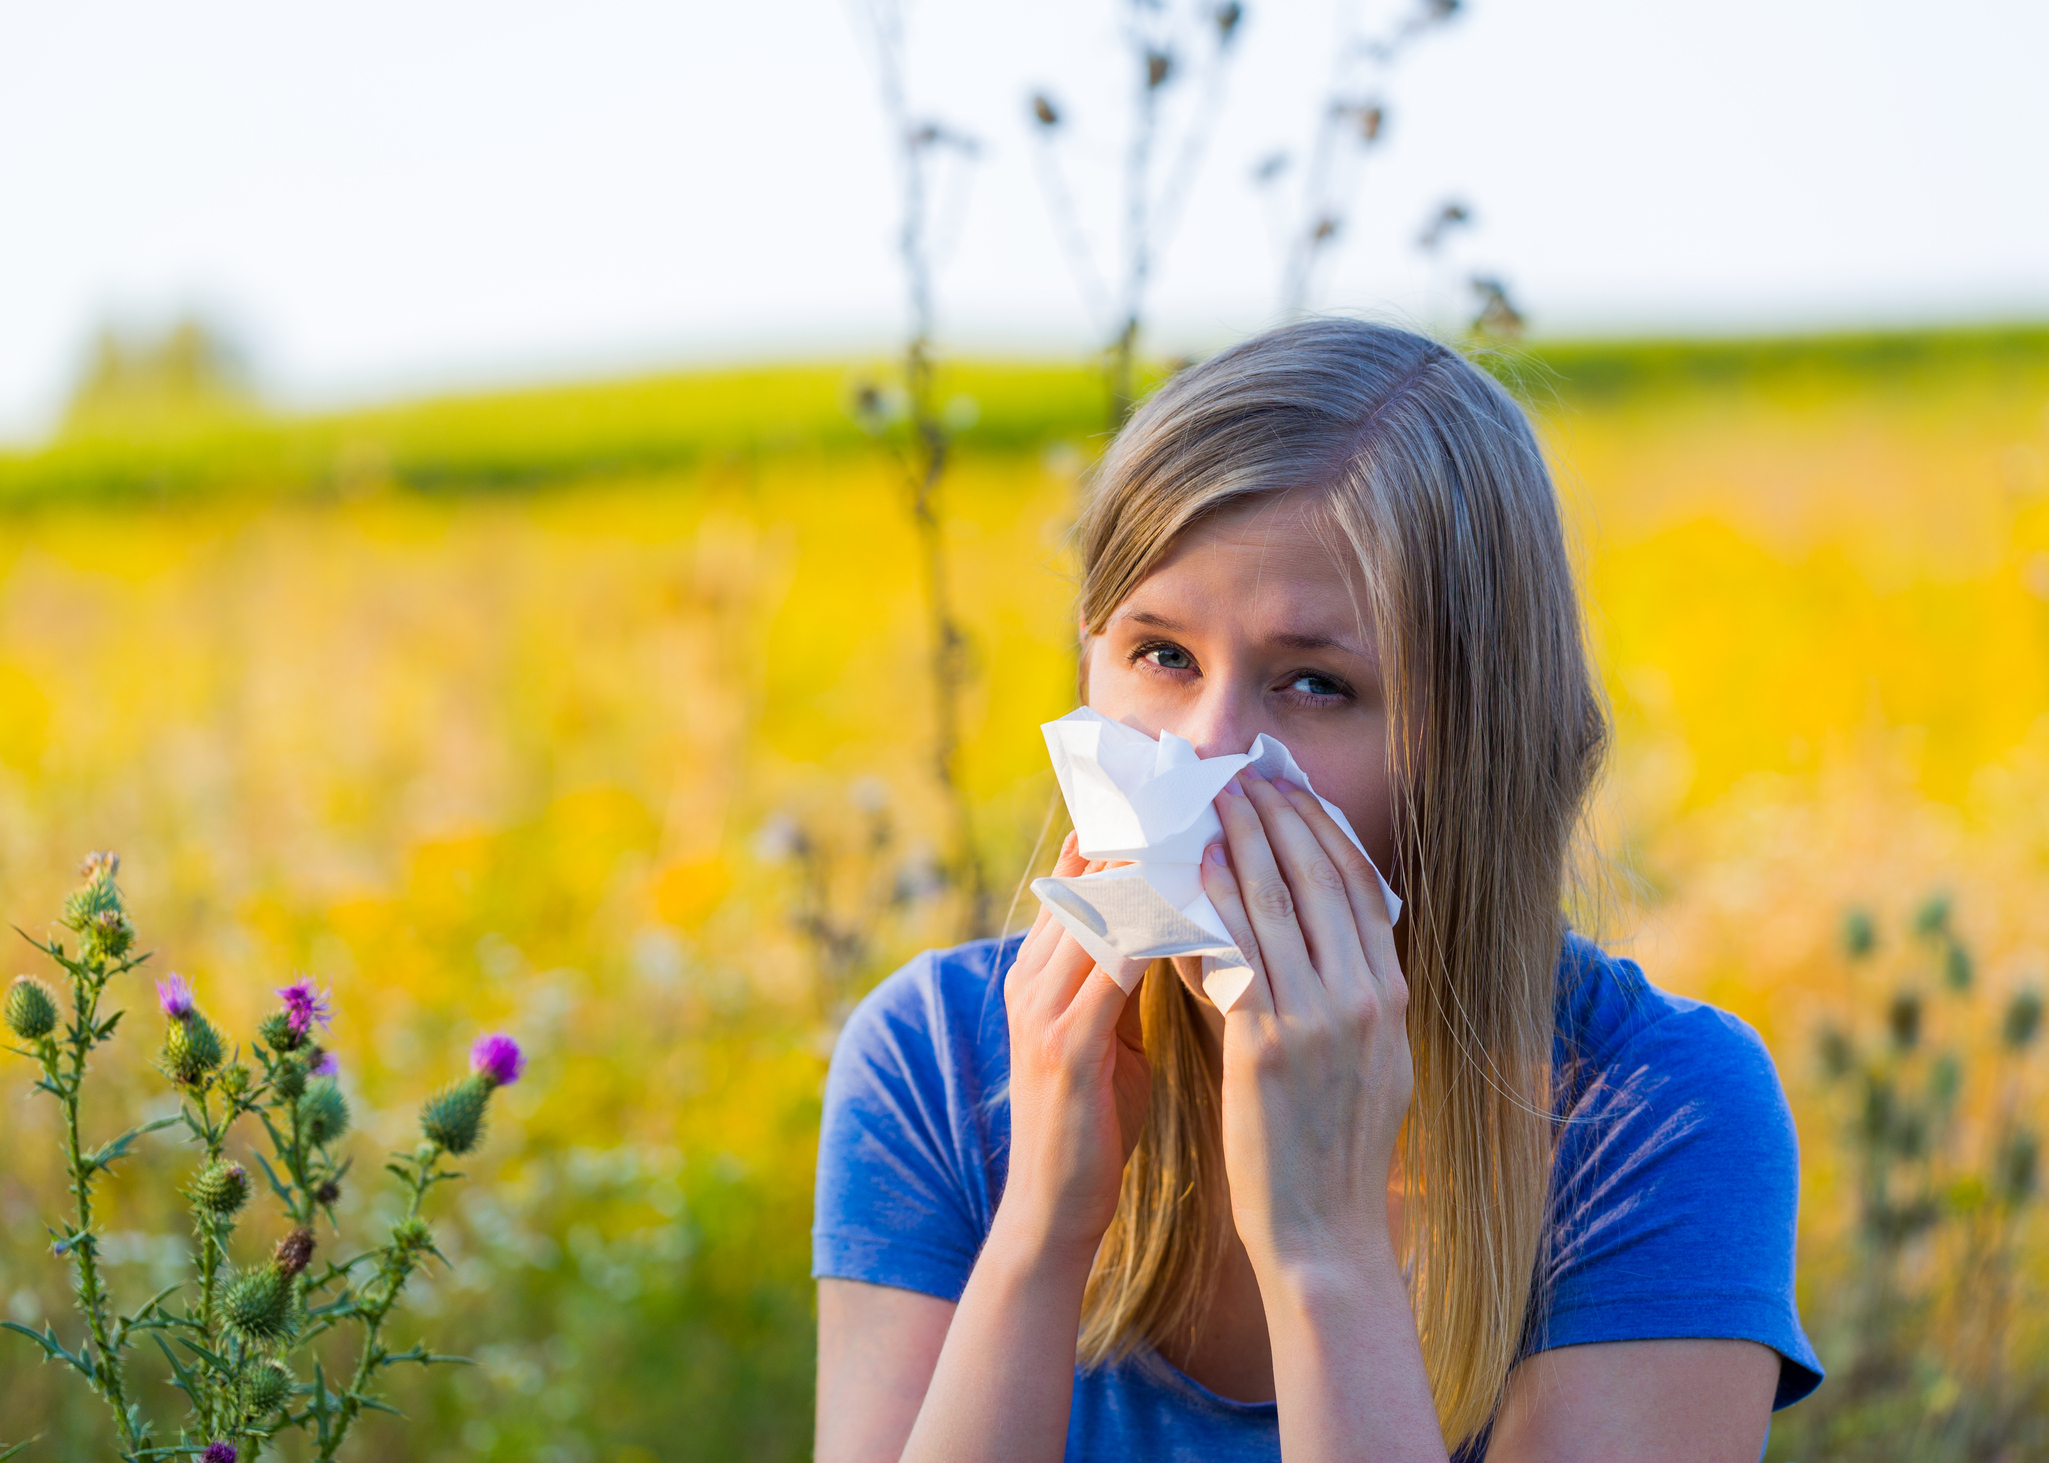 Allergic Woman Using Handkerchief On Runny Nose. AAOA, Allergy